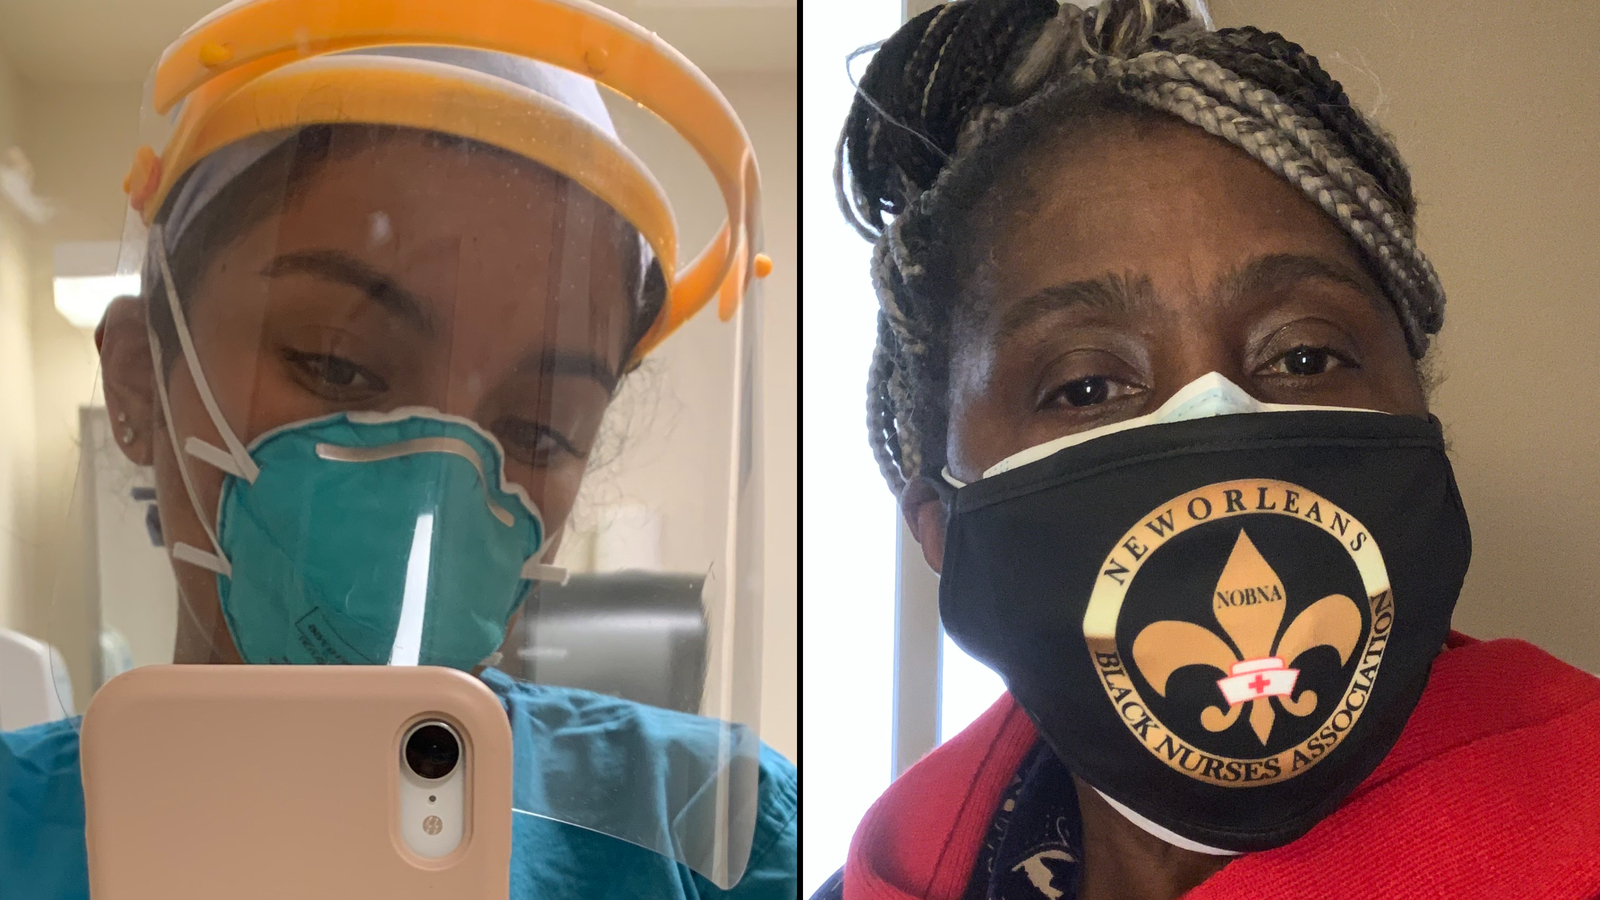 'Absolutely defeated': Black nurses struggle with mental health support while battling Covid-19